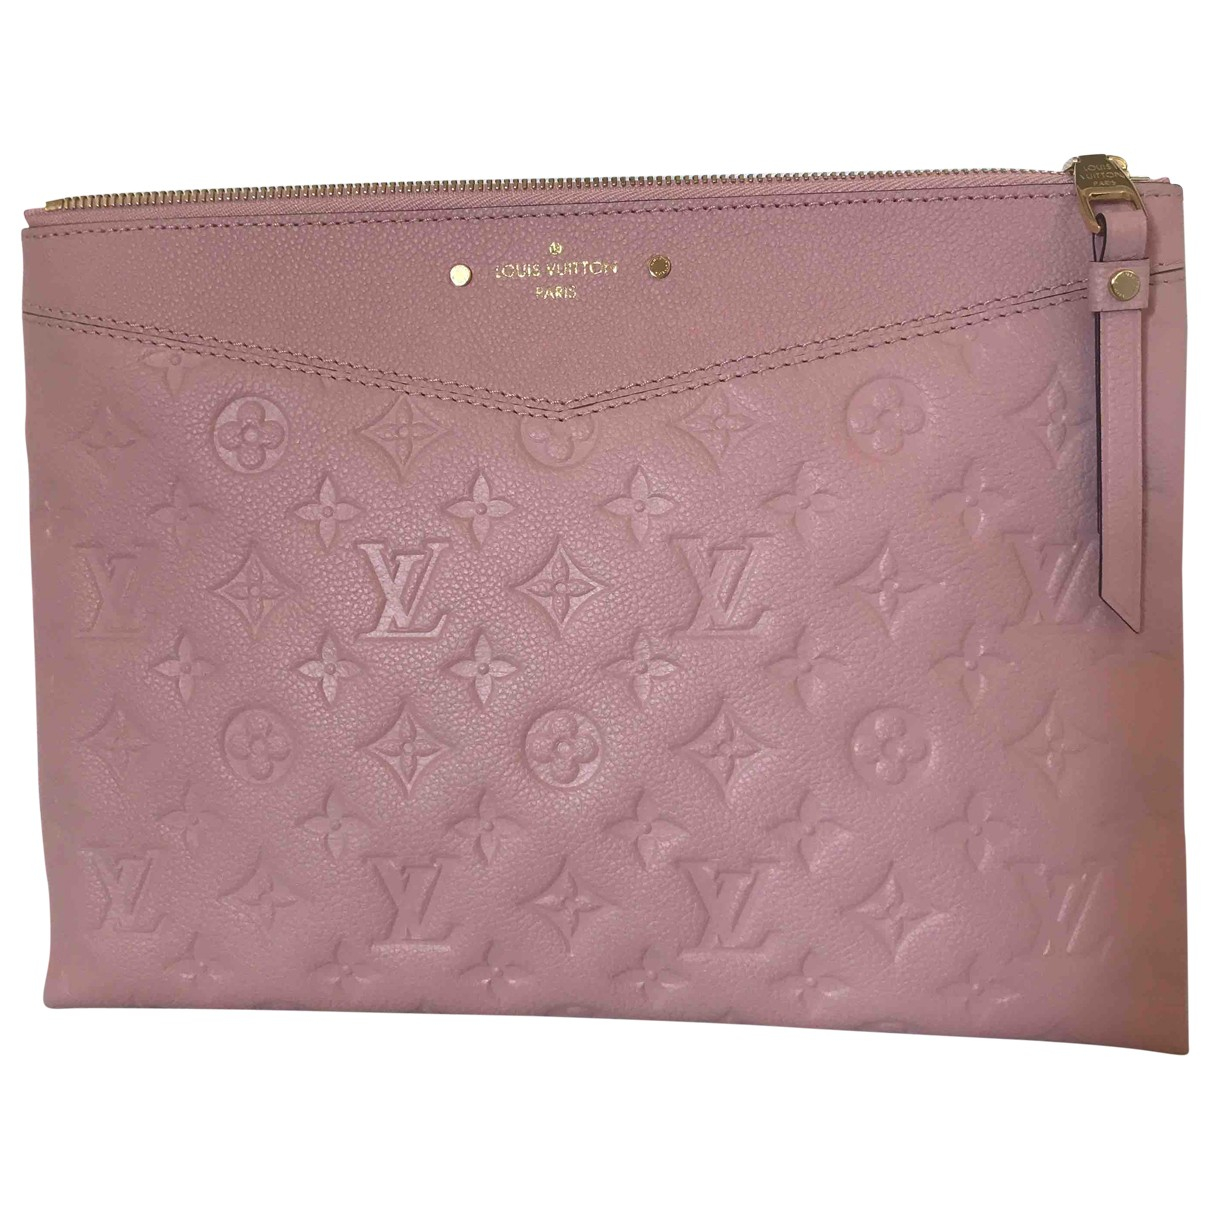 Louis Vuitton N Pink Leather Clutch bag for Women N